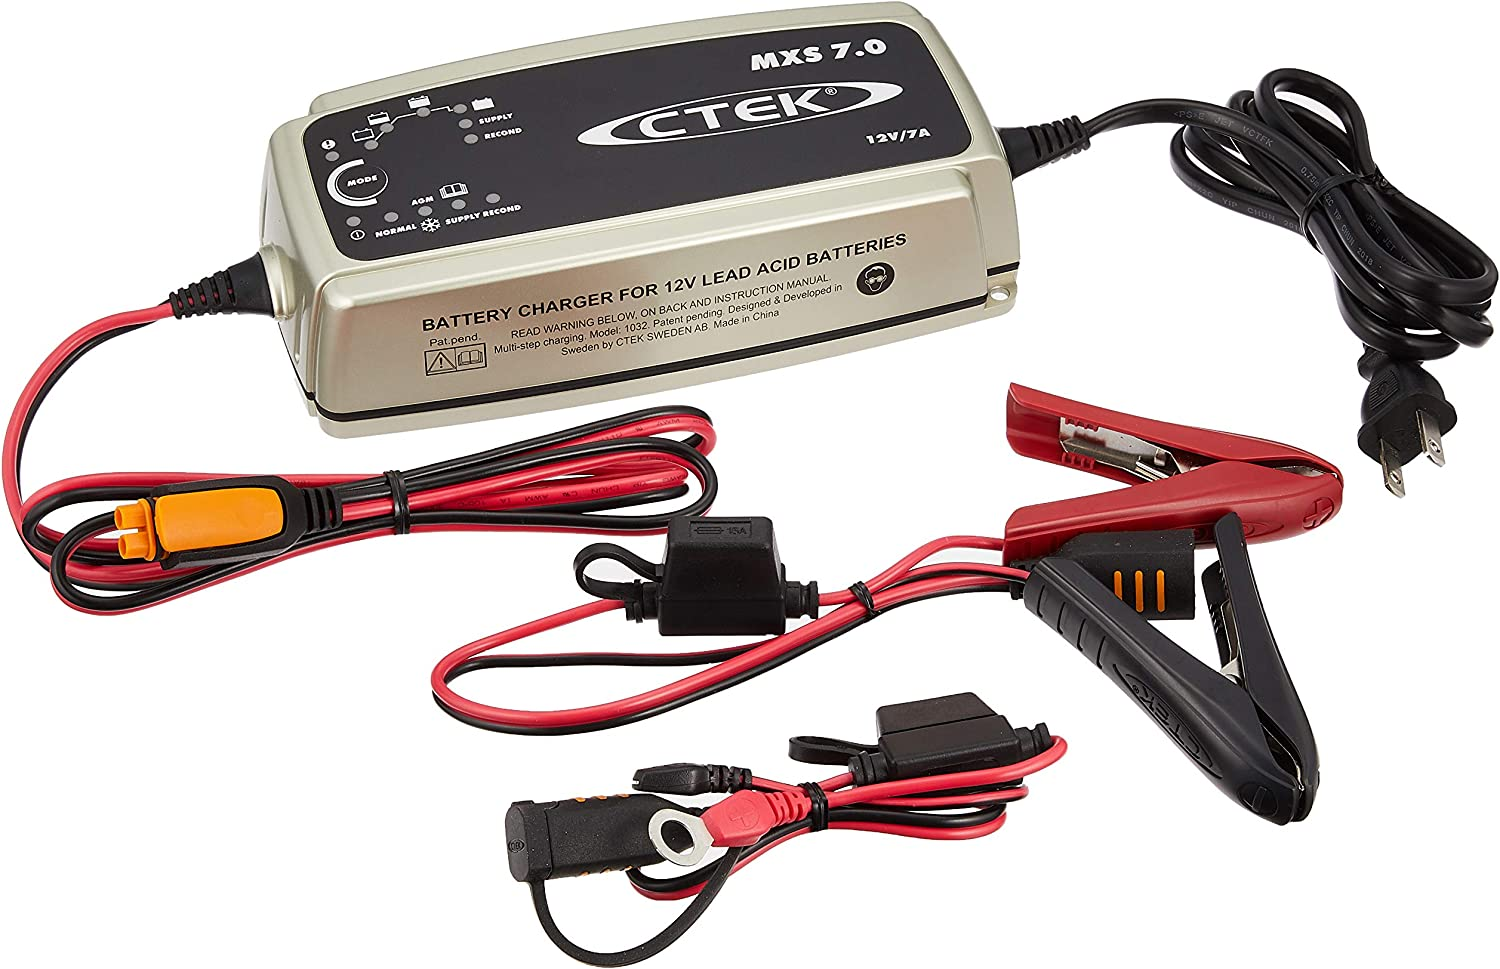 CTEK Comfort Battery Charge Clamp Indicator 12V Chargers /</<NEW/>/>